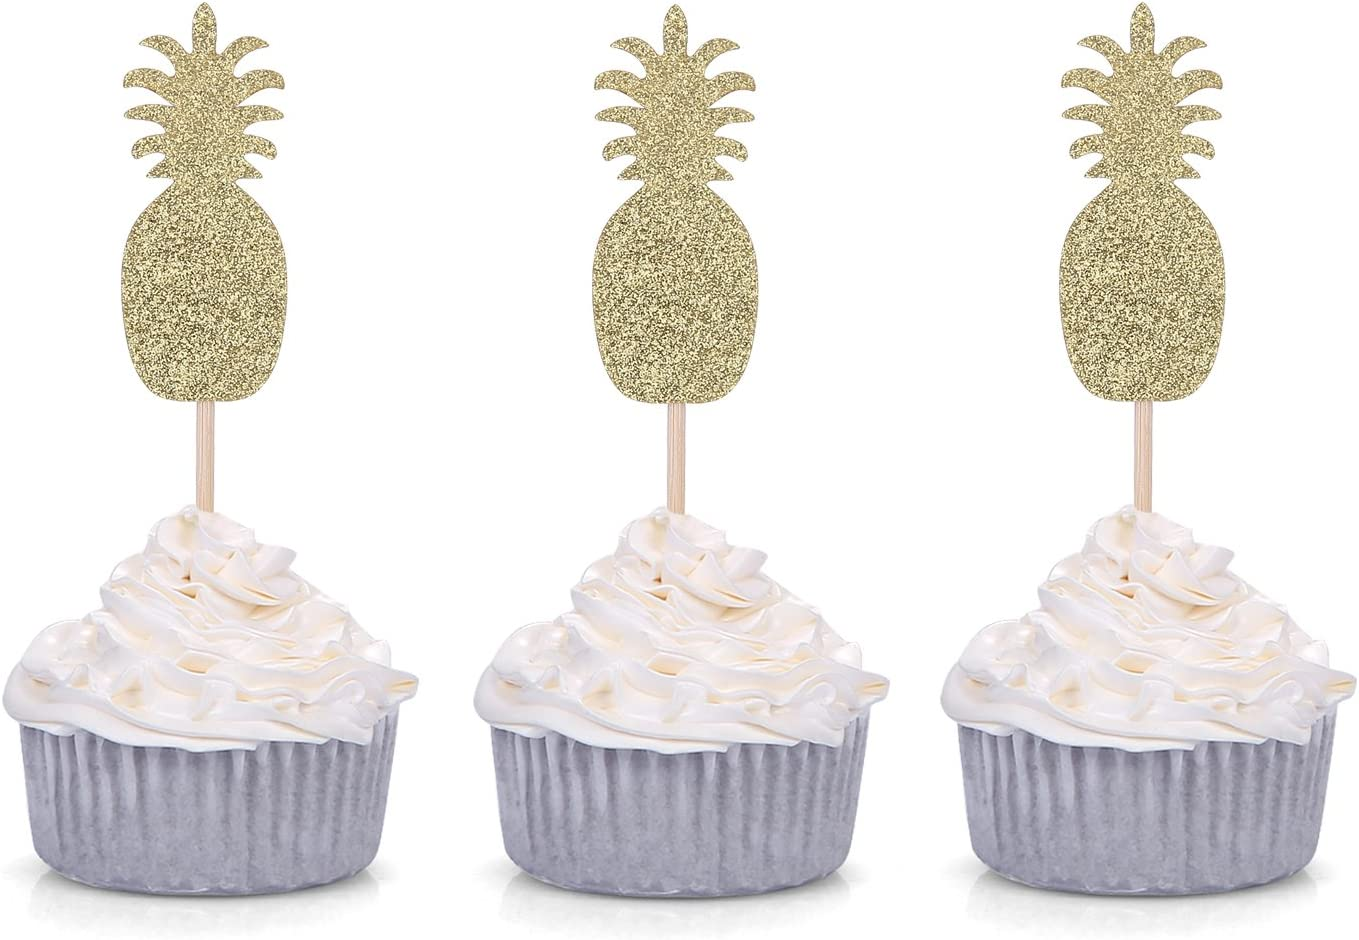 24 Pack Golden Pineapple Cupcake Toppers Tropical Summer Hawaii Party Decors - by Giuffi